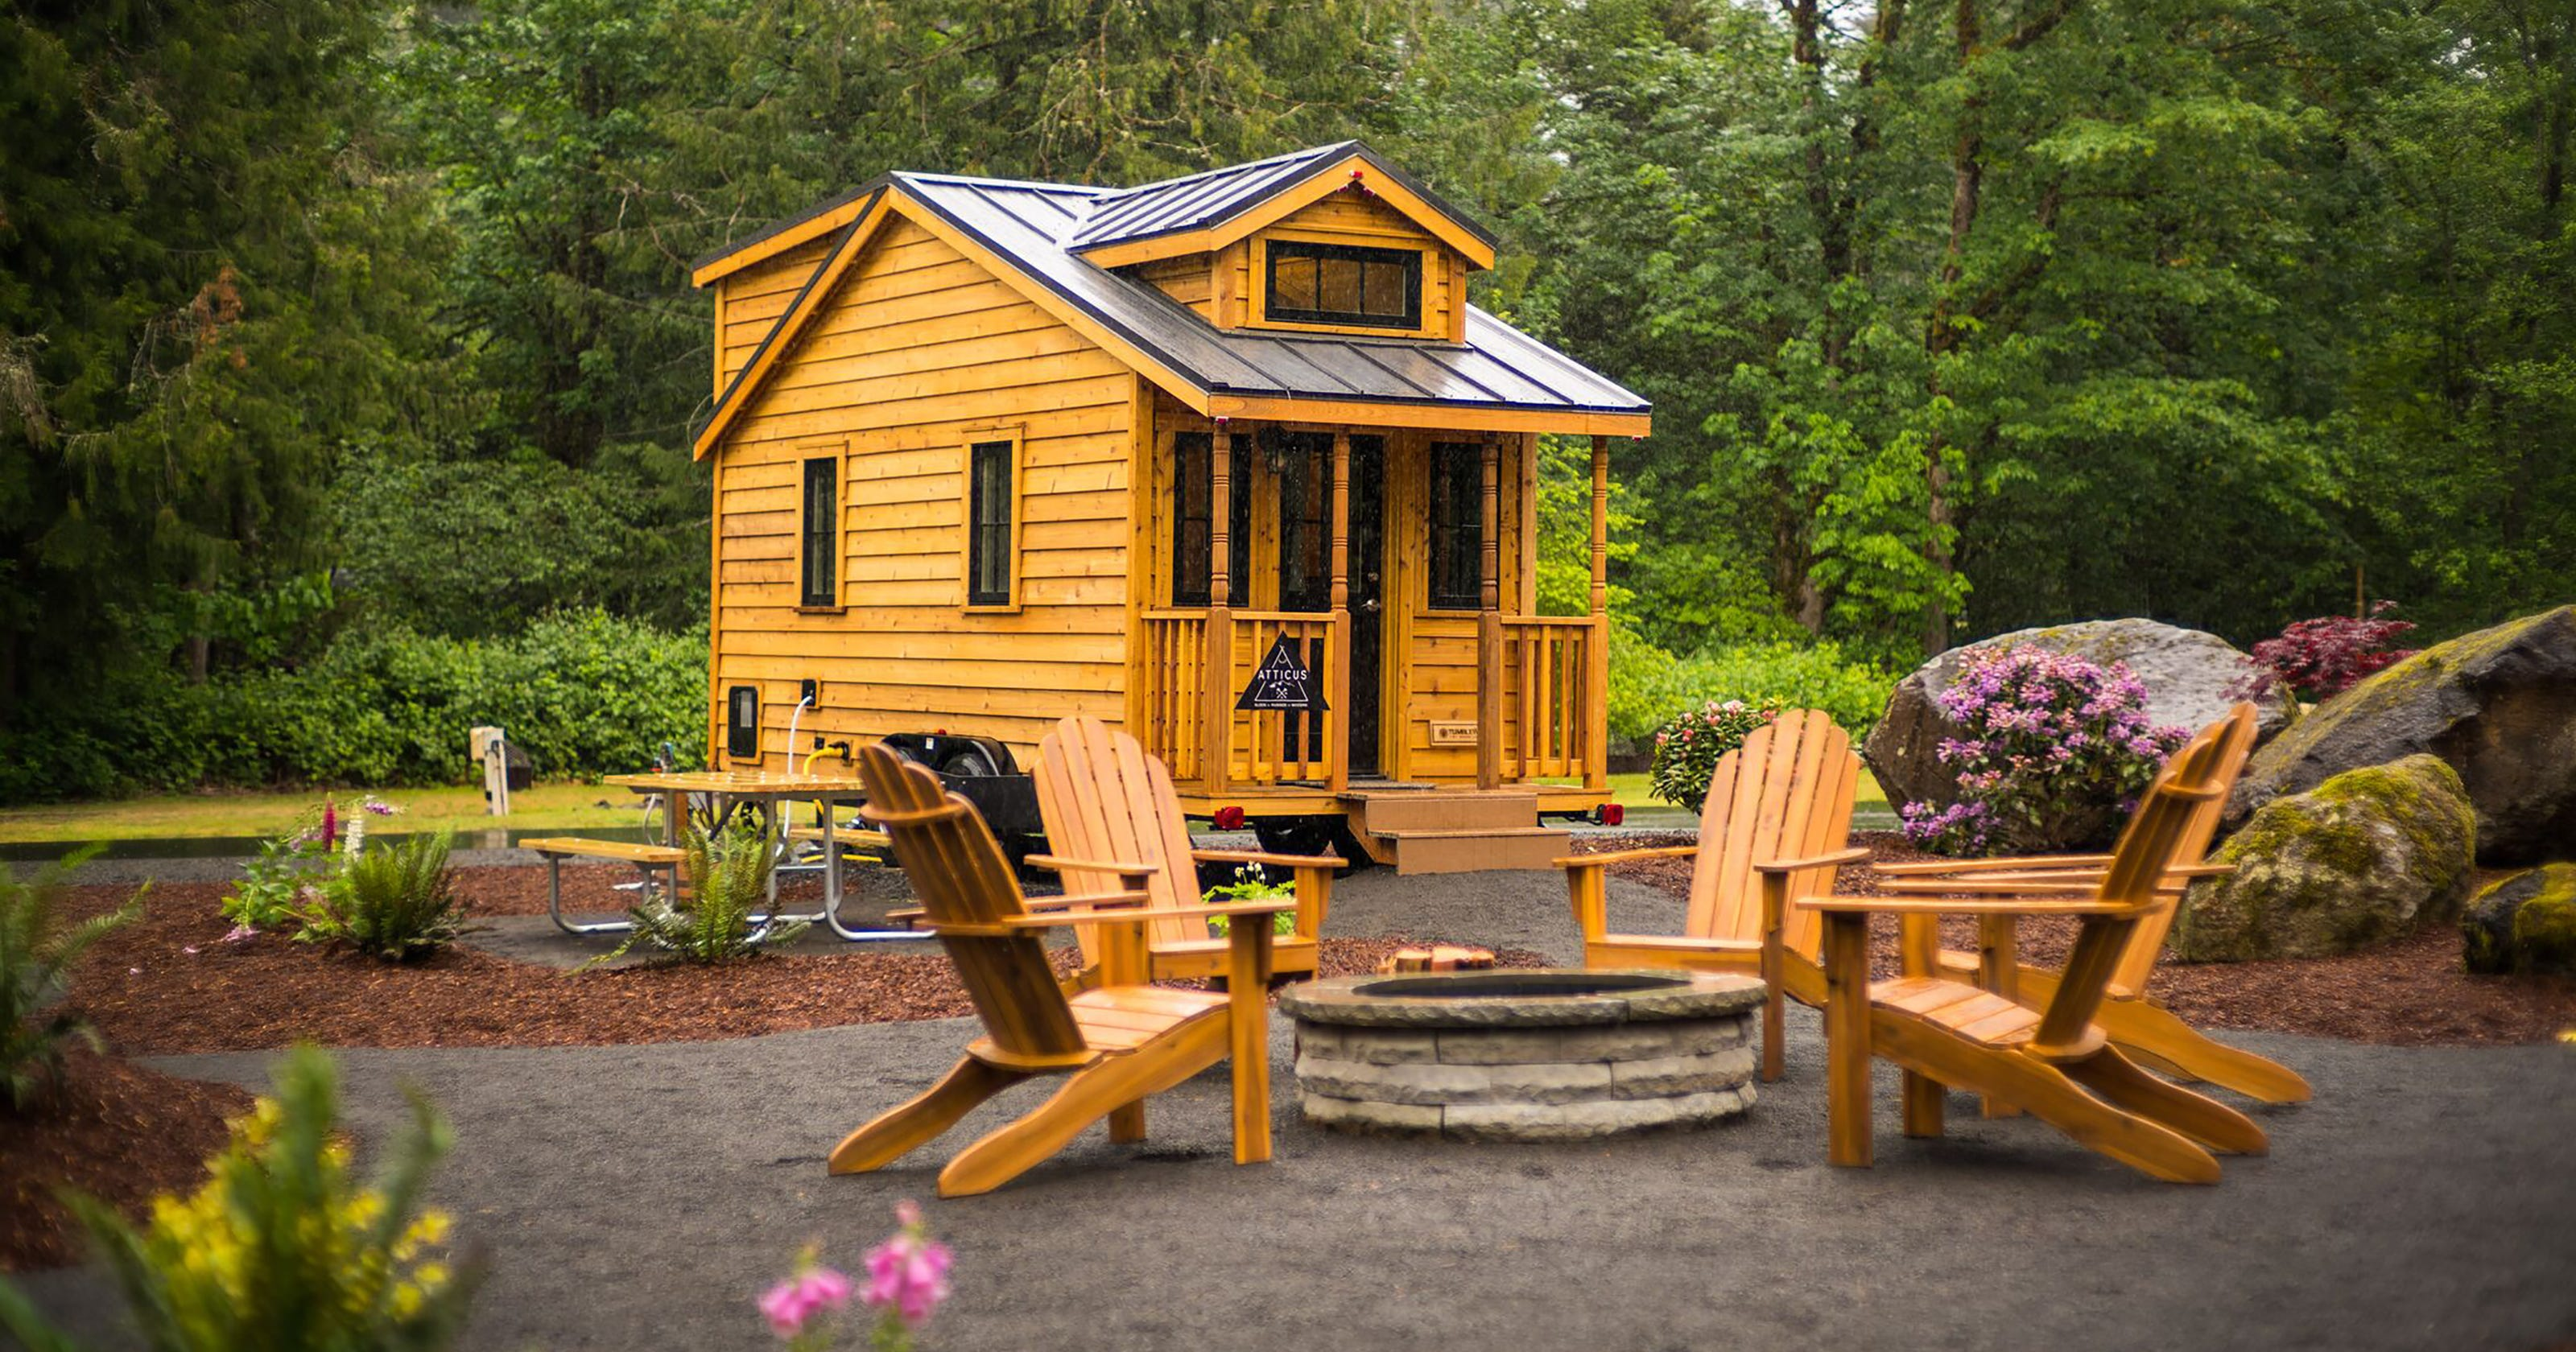 Tiny-house test drive: Try one on vacation before taking the plunge